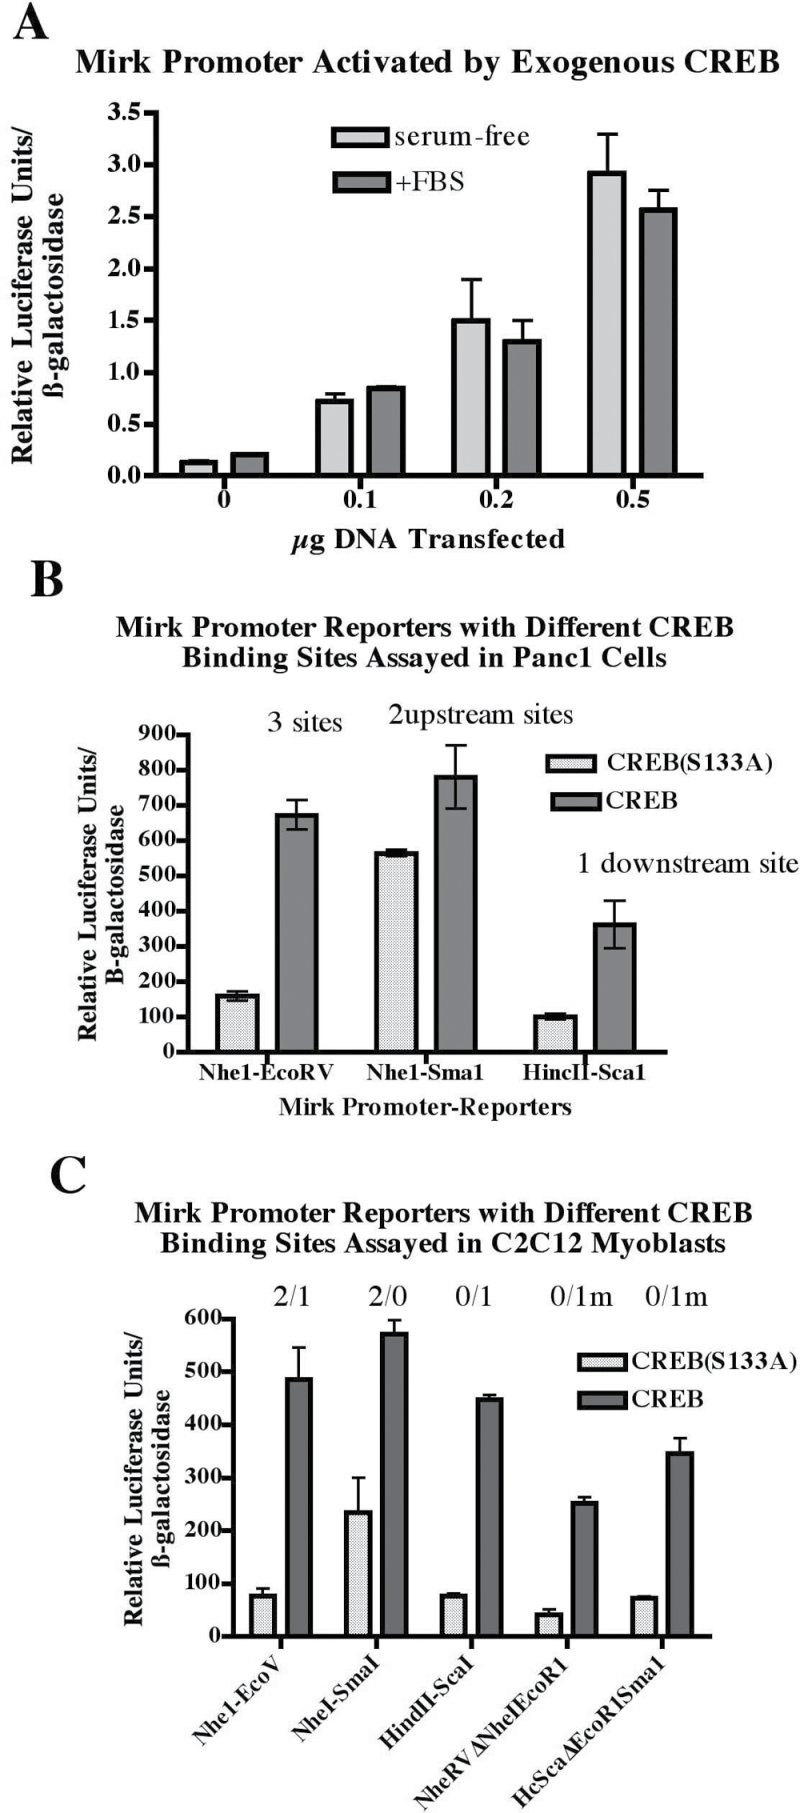 Mirk promoter activated through CREB binding sites. ( A ) Dose-dependent activation of Mirk promoter–luciferase reporter by increasing amounts of transfected CREB. Panc1 cells were transfected with 0.5 µg pMp (Nhe1-EcoRv-luciferase 9657kb) Mirk promoter–reporter and 0.25 µg β-galactosidase reporter plus increasing amounts of the CREB expression plasmid. Cells were cultured overnight either in serum-free DMEM or serum-containing growth medium before lysis and assay. Data are mean ± SD ( n = 3). ( B ) Panc1 cells were transfected with 0.5 µg of either the 9600bp Nhe1-EcoRv-luciferase Mirk promoter–reporter containing two upstream putative CREB binding sites and one site in exon 4, the 5887bp NheI-Sma Mirk promoter–reporter containing two upstream putative CREB binding sites only or the 4830bp HincII-Sca1 Mirk promoter–reporter containing only the putative CRE binding site in exon 4. Cotransfected were 0.25 µg β-galactosidase reporter plus 0.5 µg of either the wild-type or S133A mutant CREB expression plasmid. Cells were cultured overnight in serum-free DMEM to allow Mirk expression before lysis and assay. Data are shown as mean ± SD ( n = 3). ( C ) C2C12 myoblasts in 12-well plates were transfected for 4h with 2 µl Lipofectamine Plus and the 0.25 µg β-galactosidase reporter, 0.5 µg of either the wild-type or S133A mutant CREB expression plasmid and 5 µg of the three Mp-luciferase constructs listed in panel B plus 2 mutant constructs. The cells were cultured overnight, in DMEM + 10% FBS, then washed and placed in differentiation medium (DMEM plus 2% horse serum) for 24h before assay. Data are shown as mean ± SD ( n = 3). Results are one of three similar experiments. The numbers above the bars indicate whether the construct has one or two upstream CREB sites/downstream site, either wild-type or mutant (m).